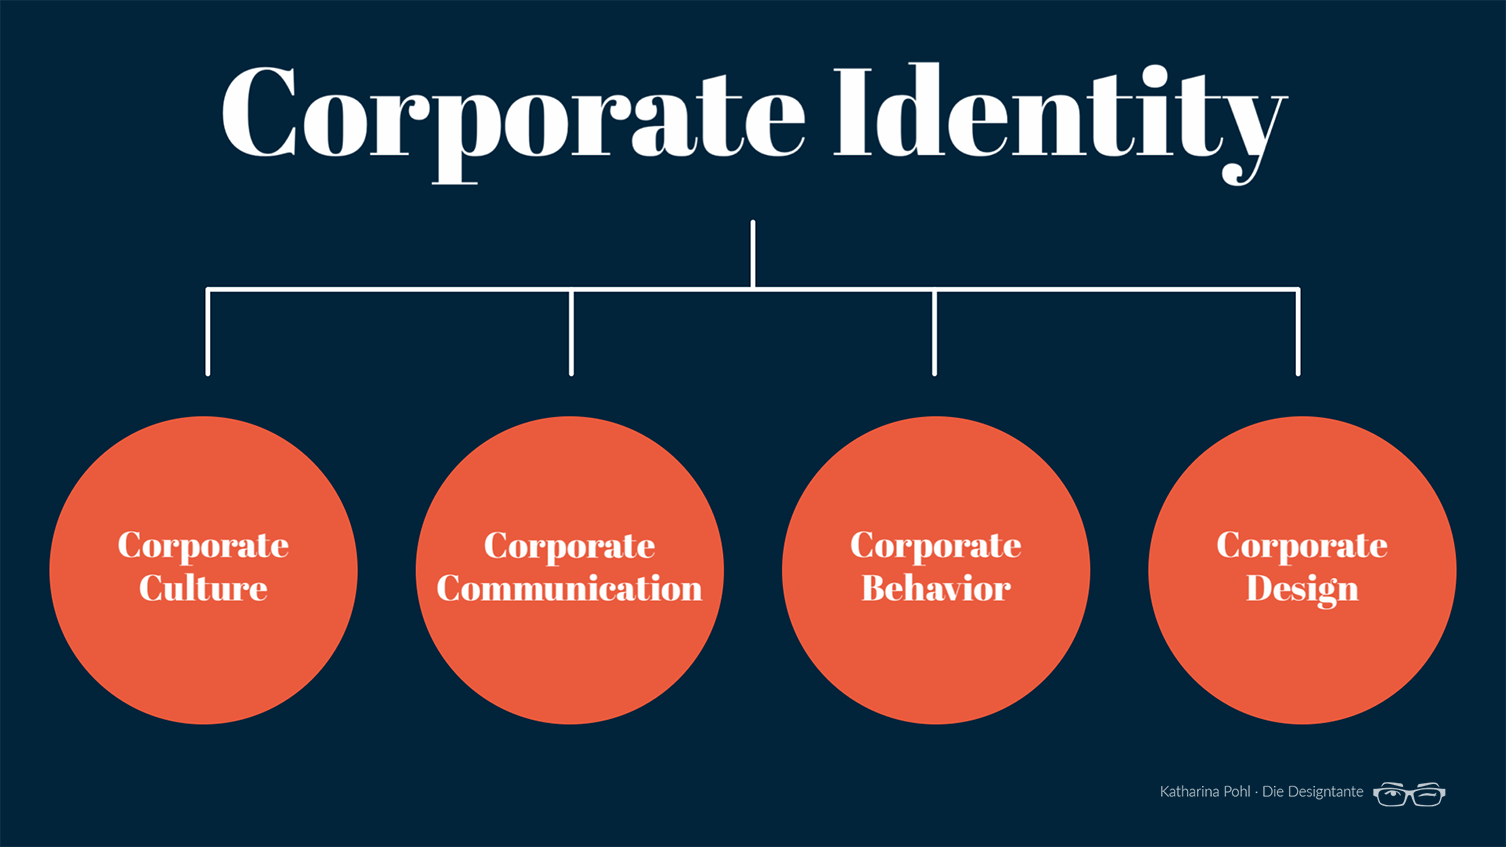 Was gehört zur Corporate Identity? Corporate Culture, Corporate Communication, Corporate Behavior und Corporate Design